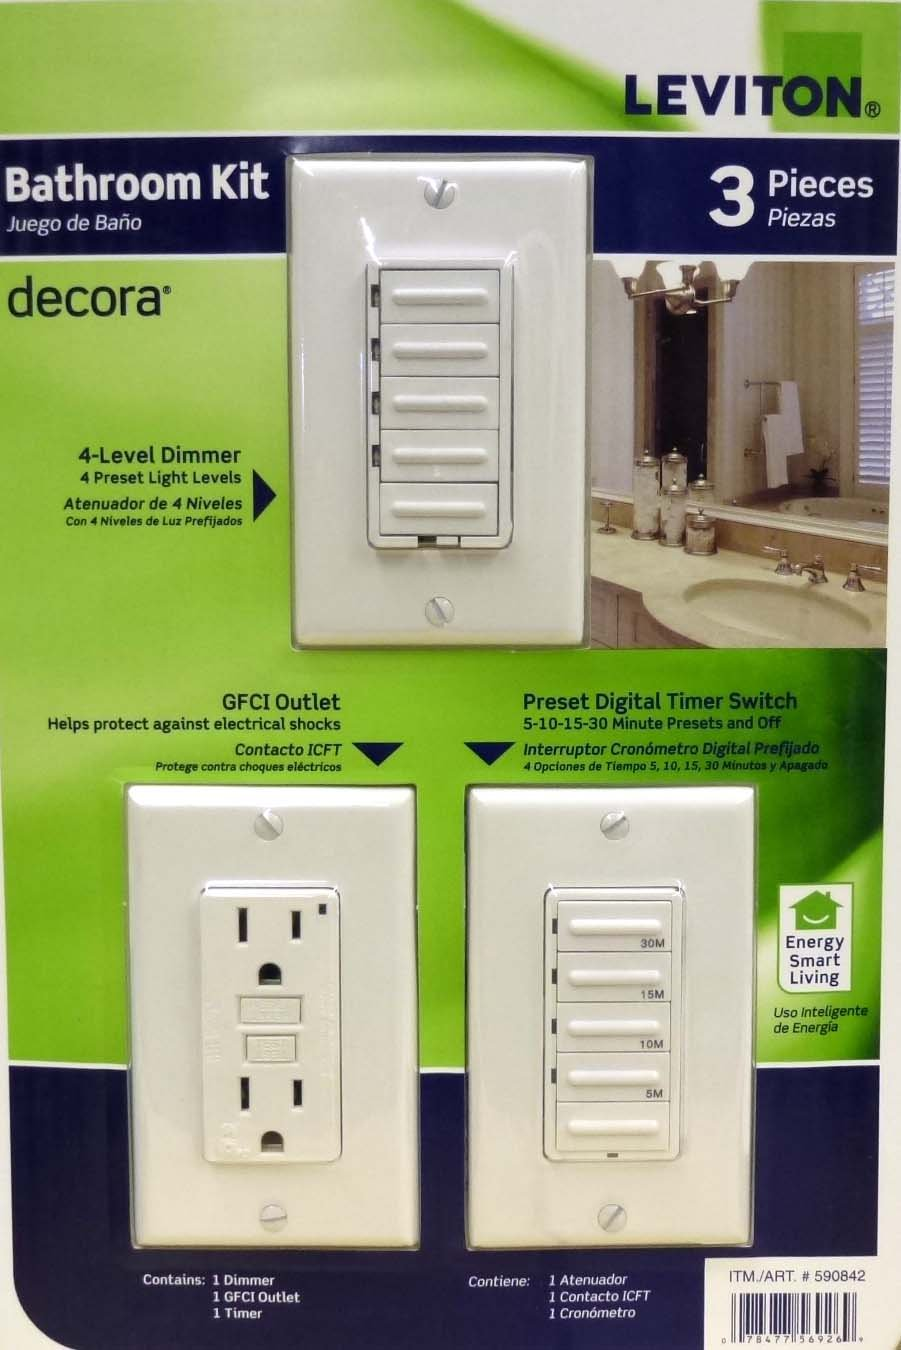 Amazoncom Leviton Bathroom Decora  PACK Level Dimmer GDCI - Bathroom dimmer light switch